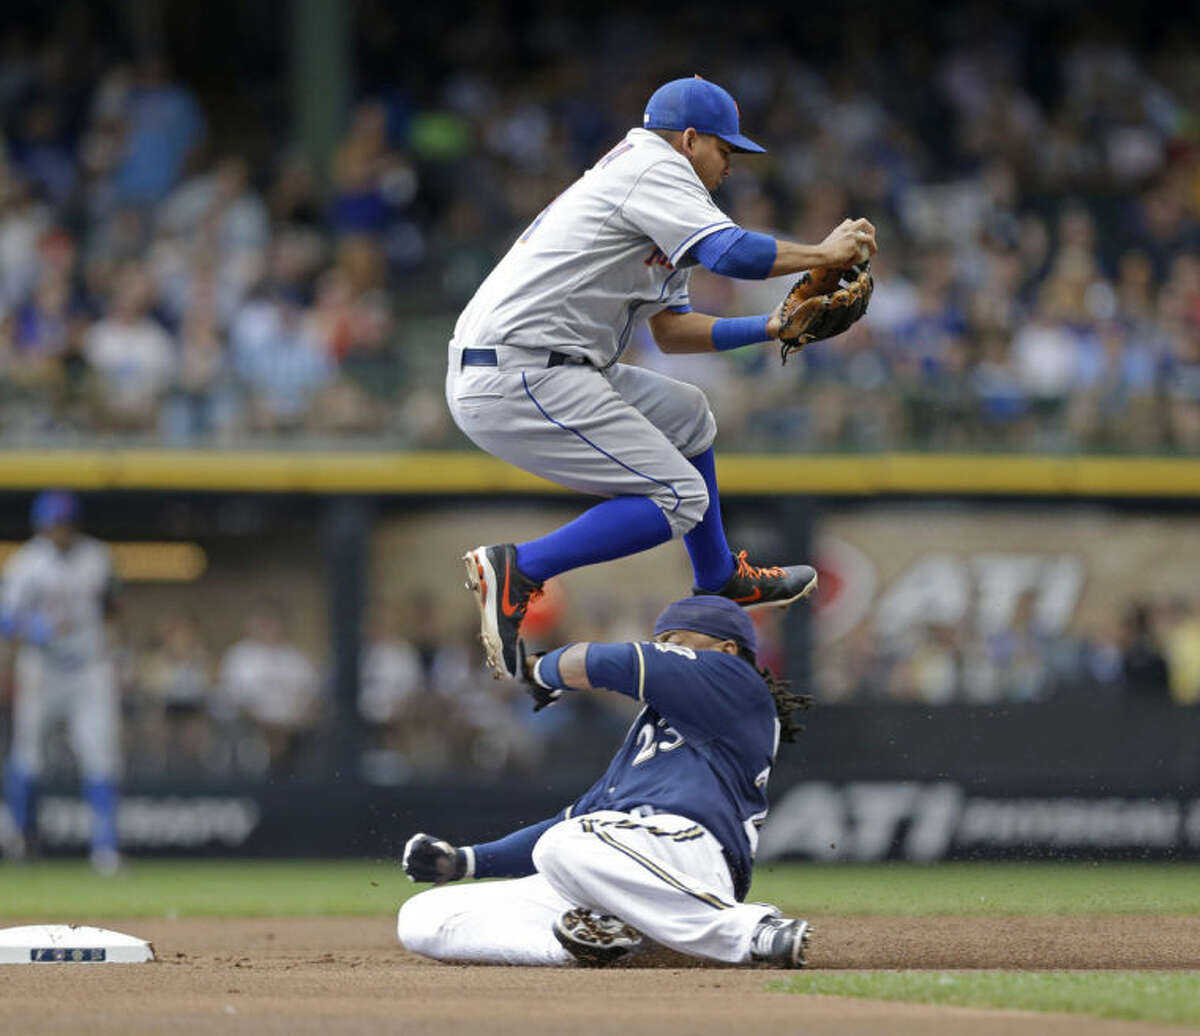 New York Mets' Ruben Tejada, top, forces out Milwaukee Brewers' Rickie Weeks on a ball hit by Brewers' Ryan Braun during the first inning of a baseball game Sunday, July 27, 2014, in Milwaukee. (AP Photo/Jeffrey Phelps)